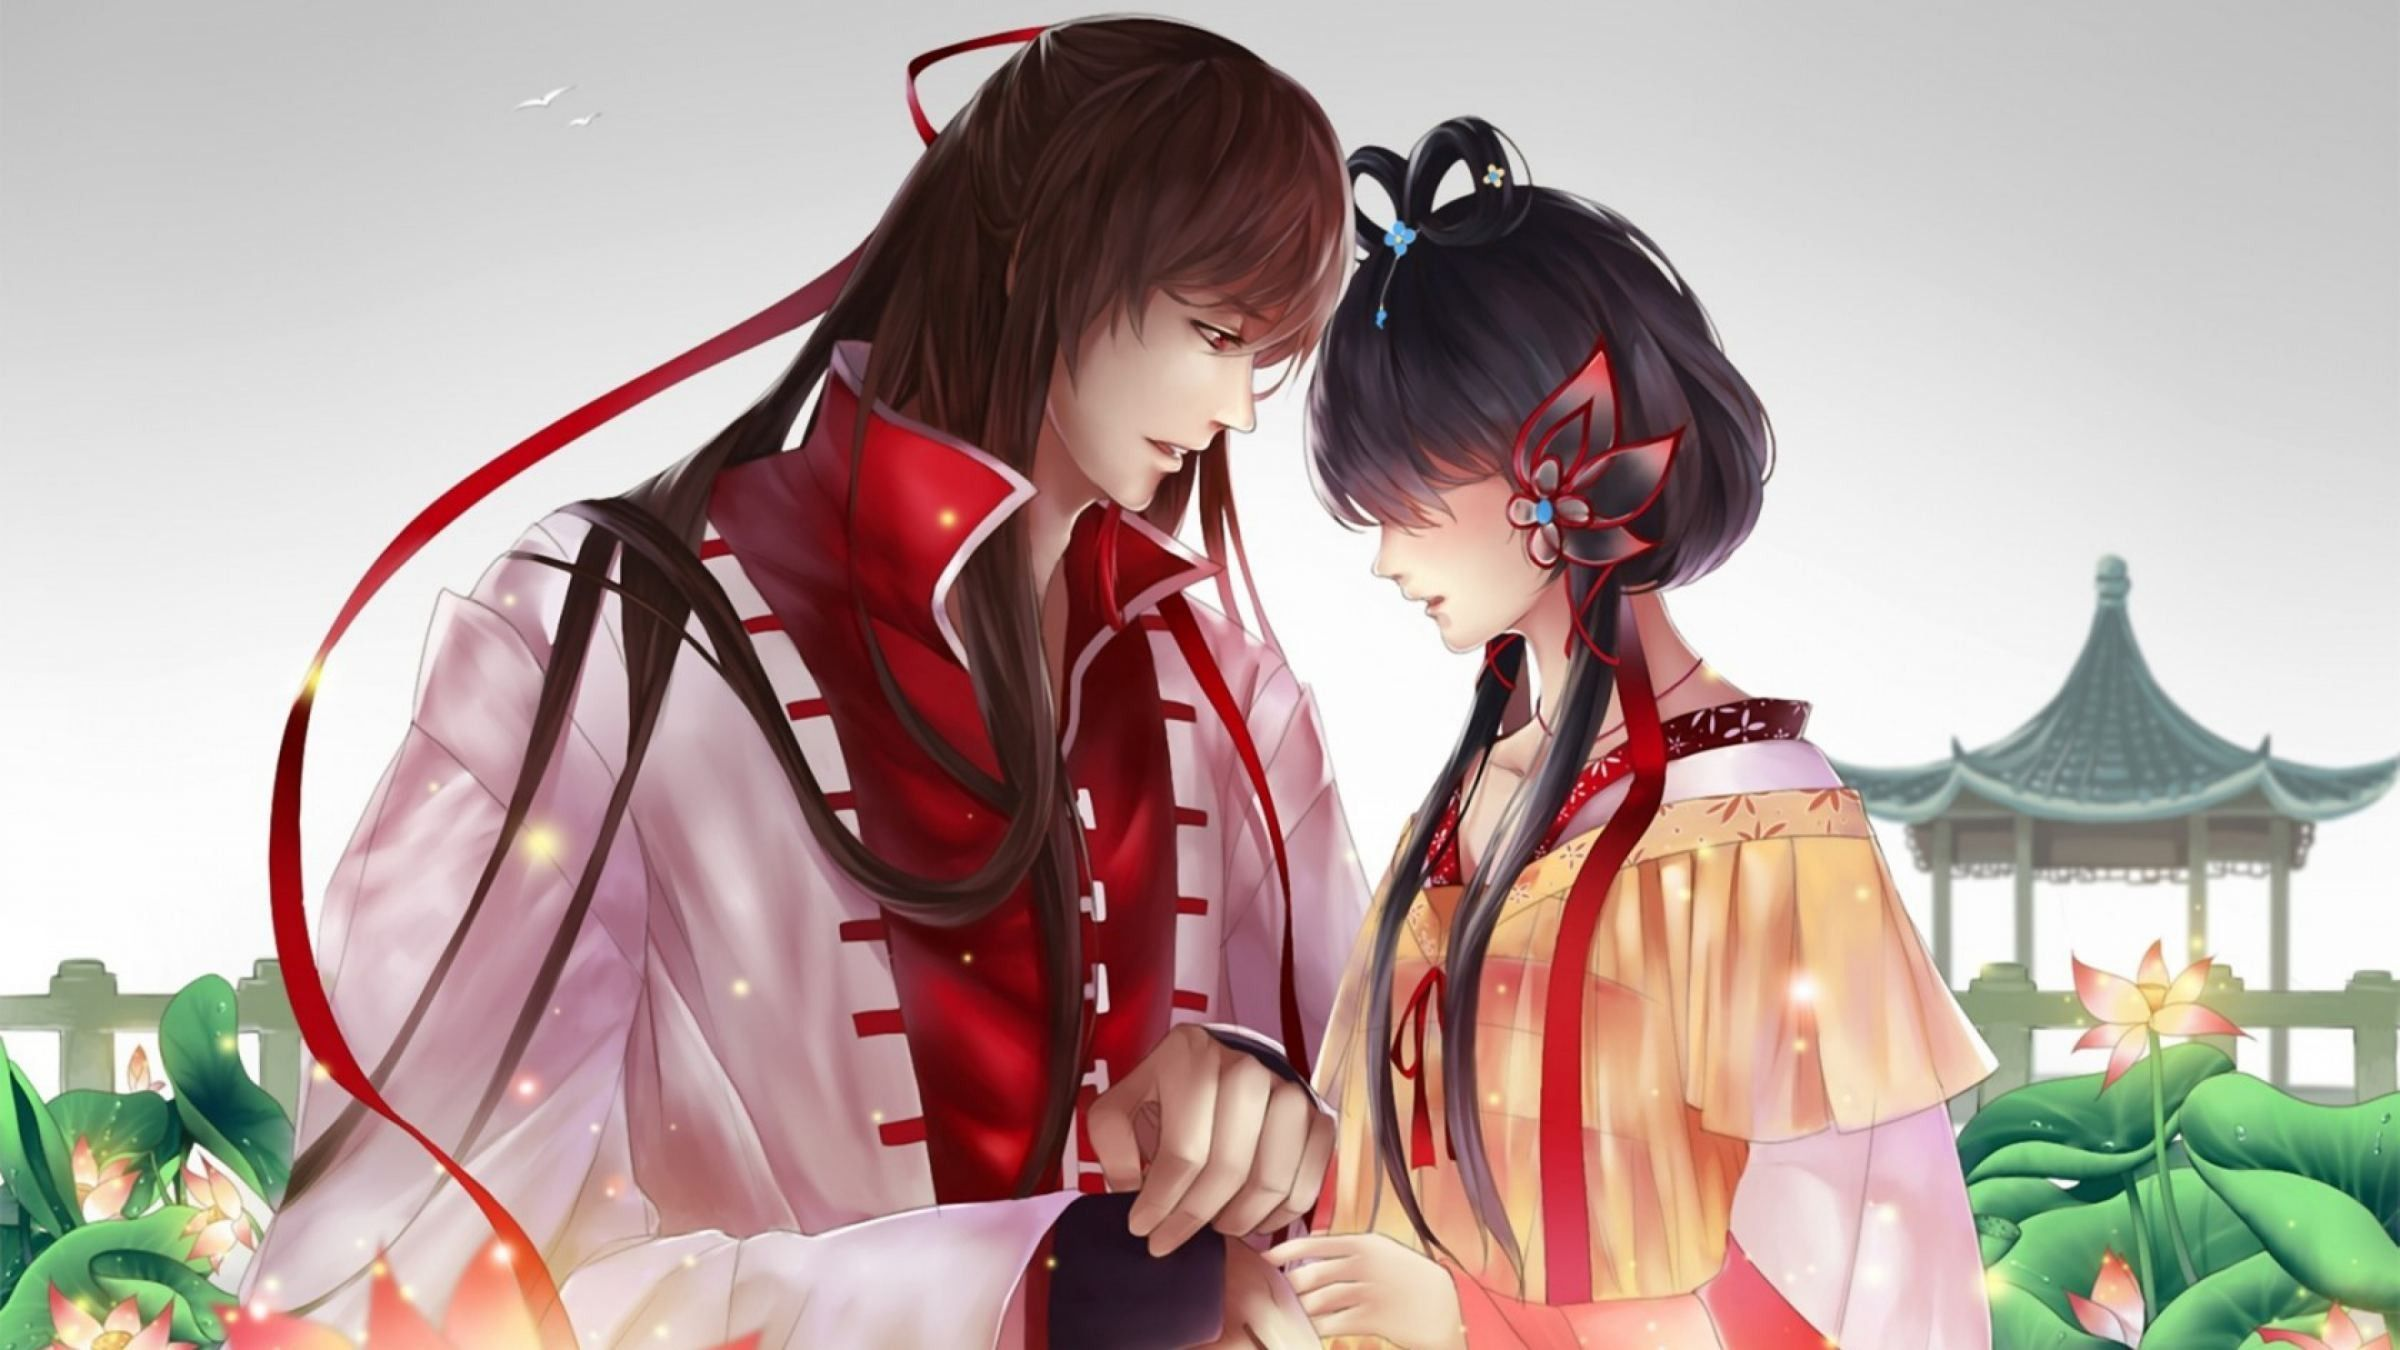 Cute Anime Couple HD Wallpapers - Wallpaper Cave